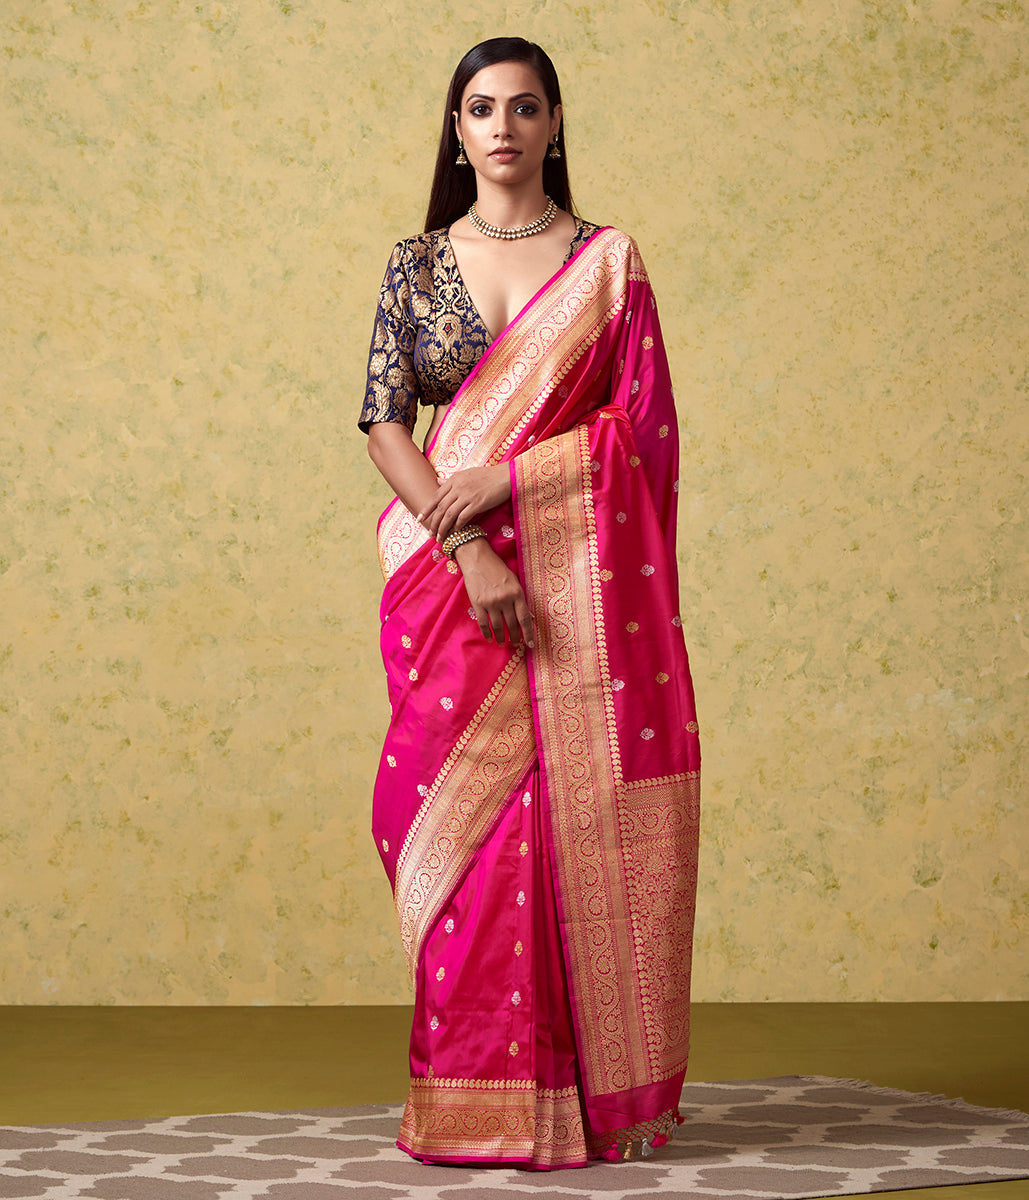 Handwoven Pink Sona Rupa Kadhwa Booti Saree with Striped Blouse